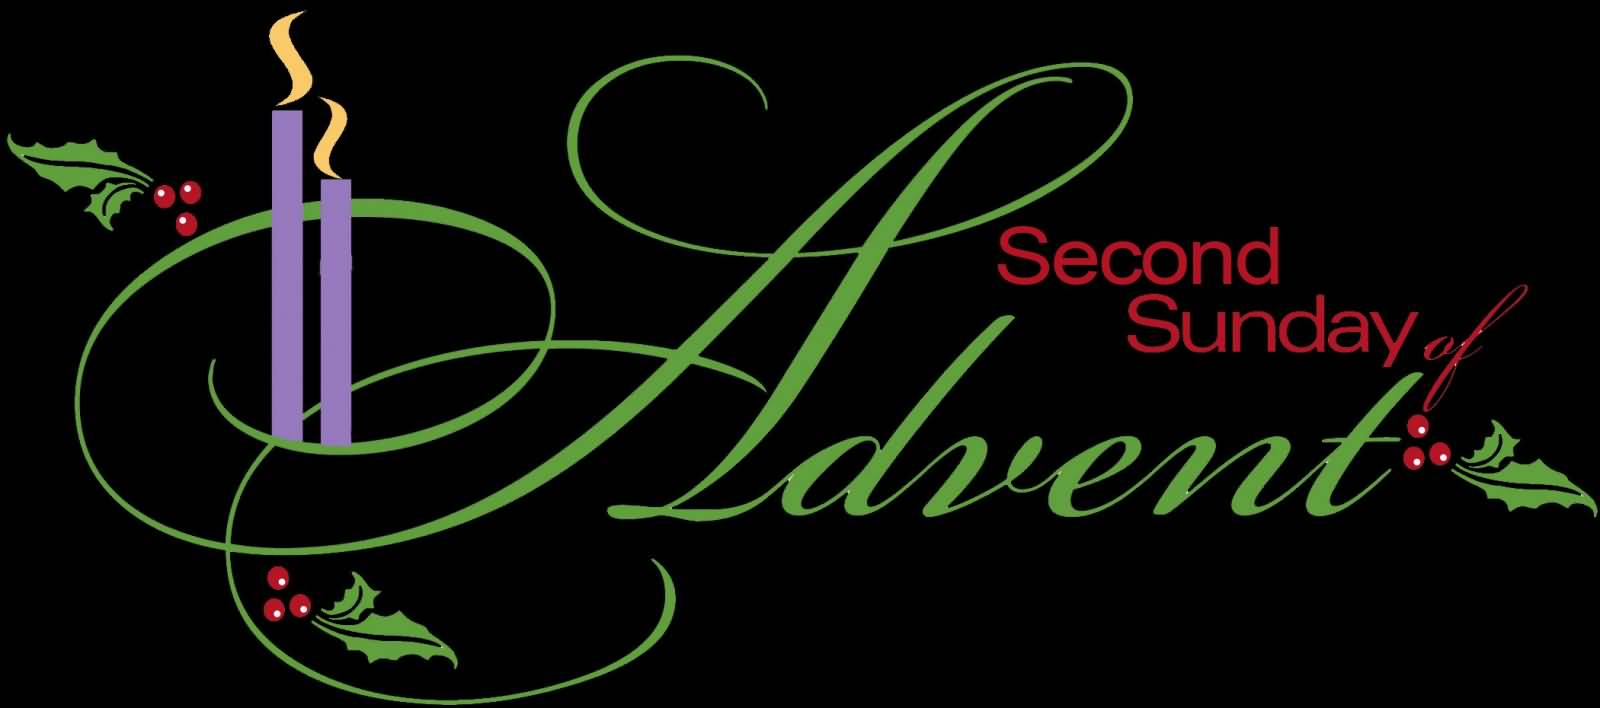 Free clipart for second sunday of advent clip art royalty free 20+ Very Beautiful Second Sunday Of Advent Greeting Pictures clip art royalty free